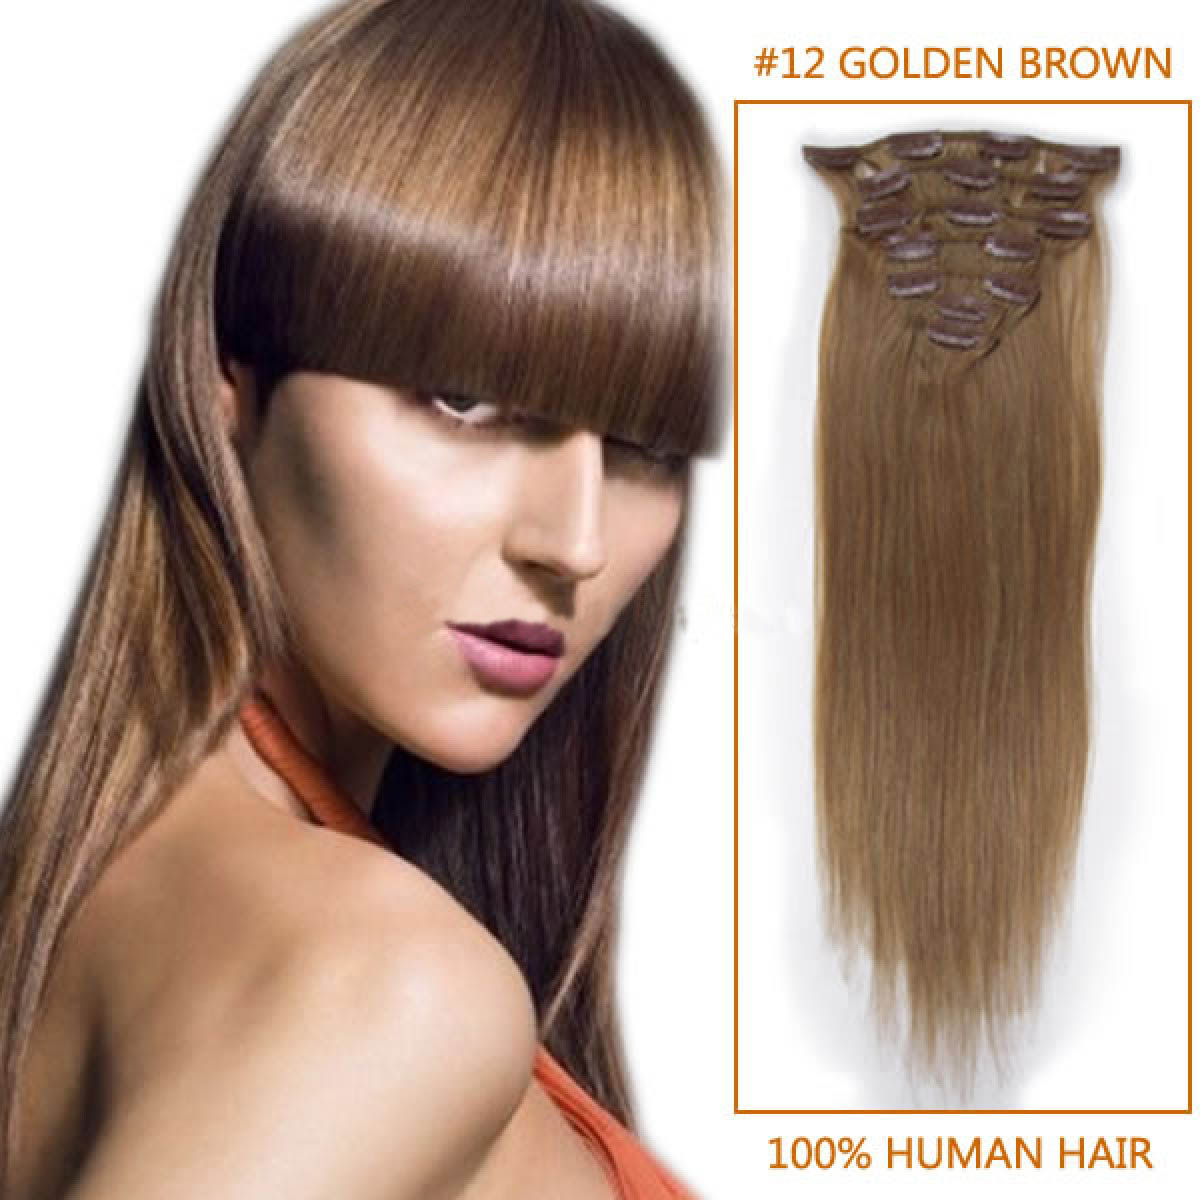 15 Inch 12 Golden Brown Clip In Human Hair Extensions 8pcs